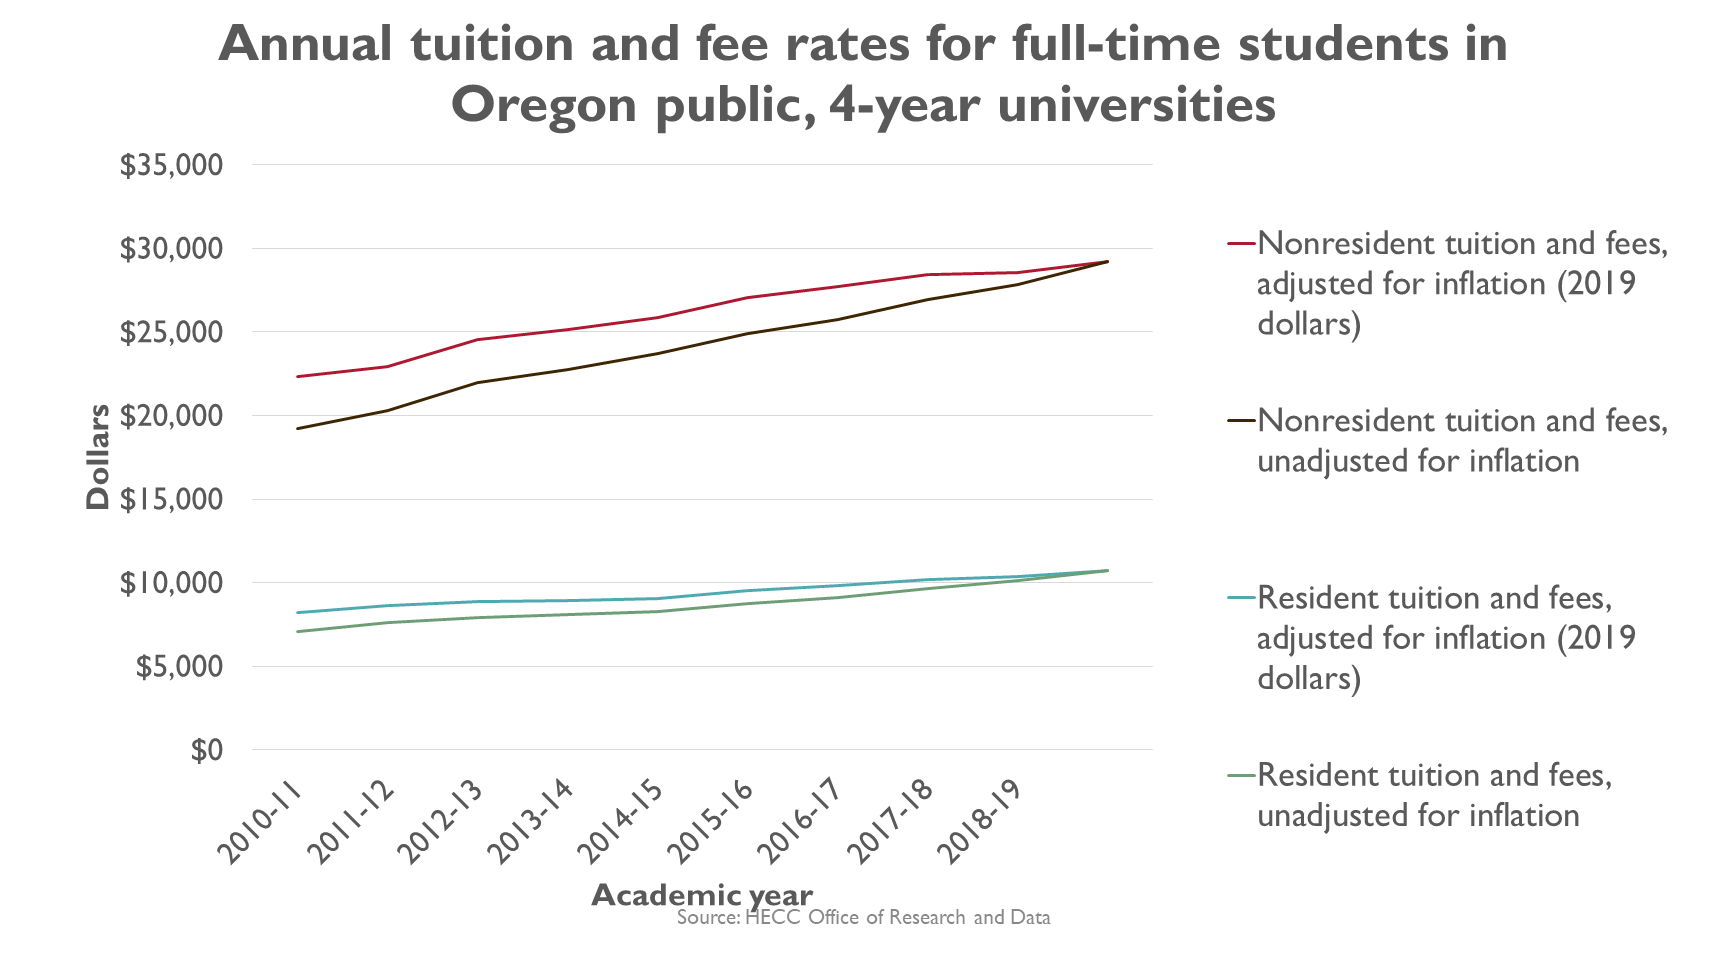 Graphic, line graph, Annual tuition and fee rates for full-time students in Oregon public universities over time